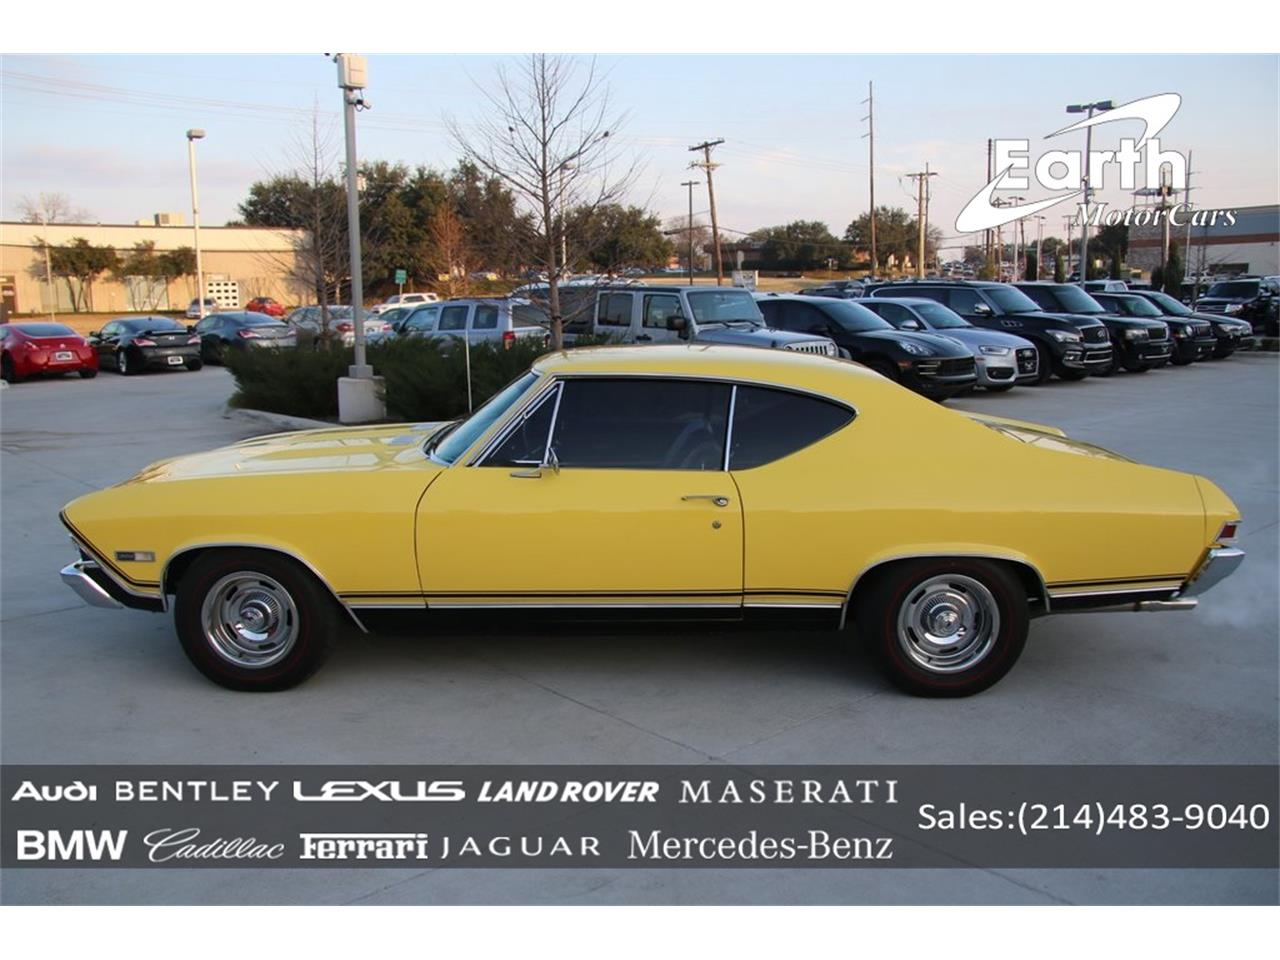 Large Picture of '68 Chevrolet Chevelle SS - $57,990.00 Offered by Earth Motorcars - PO89